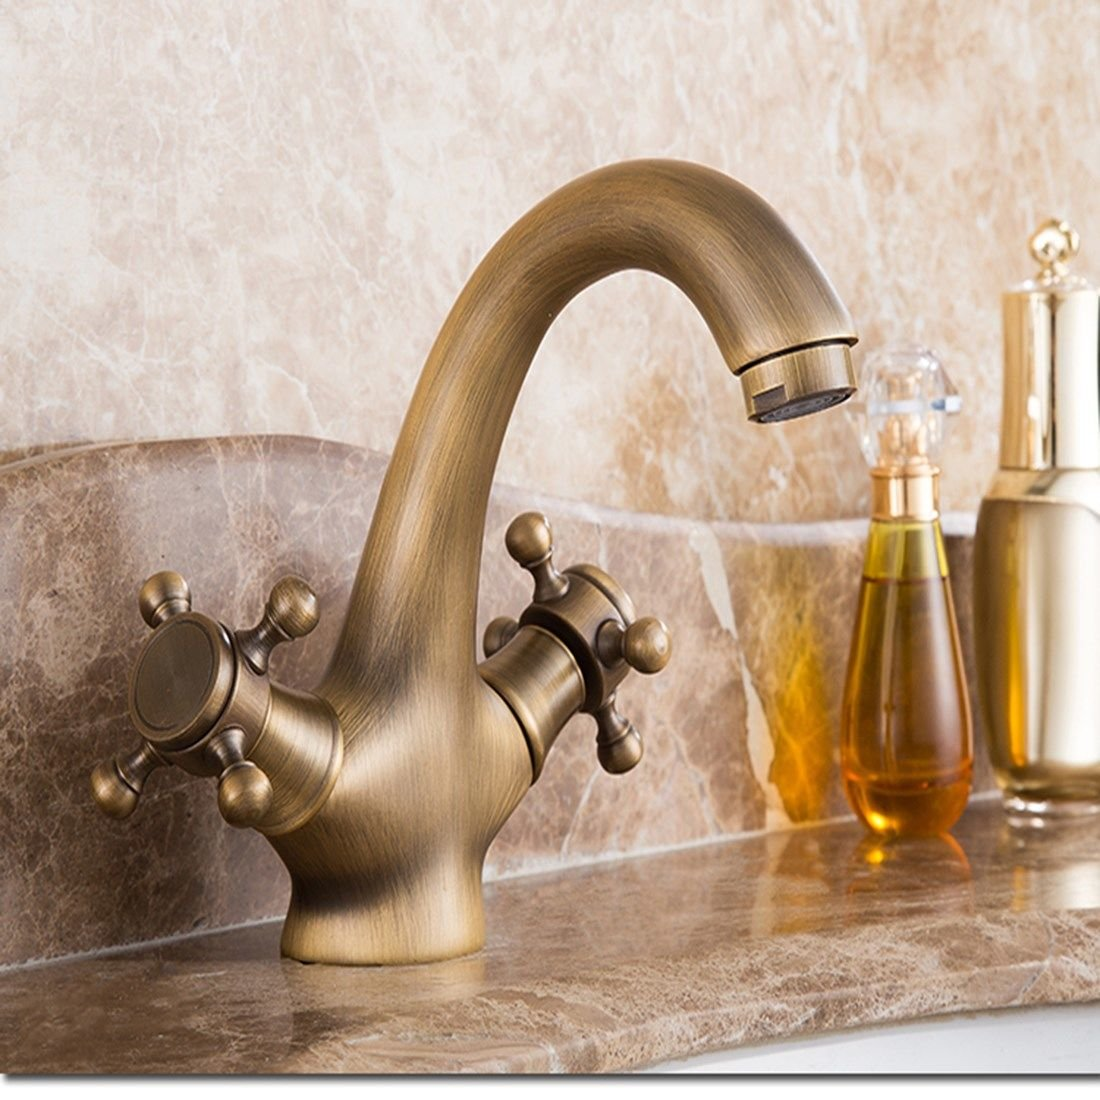 NewBorn Faucet Water Taps Hot And Cold Water Antique Water Tap Hot And Cold Basin Sink Vanity Antique Copper Basin-Wide Bench Table Basin